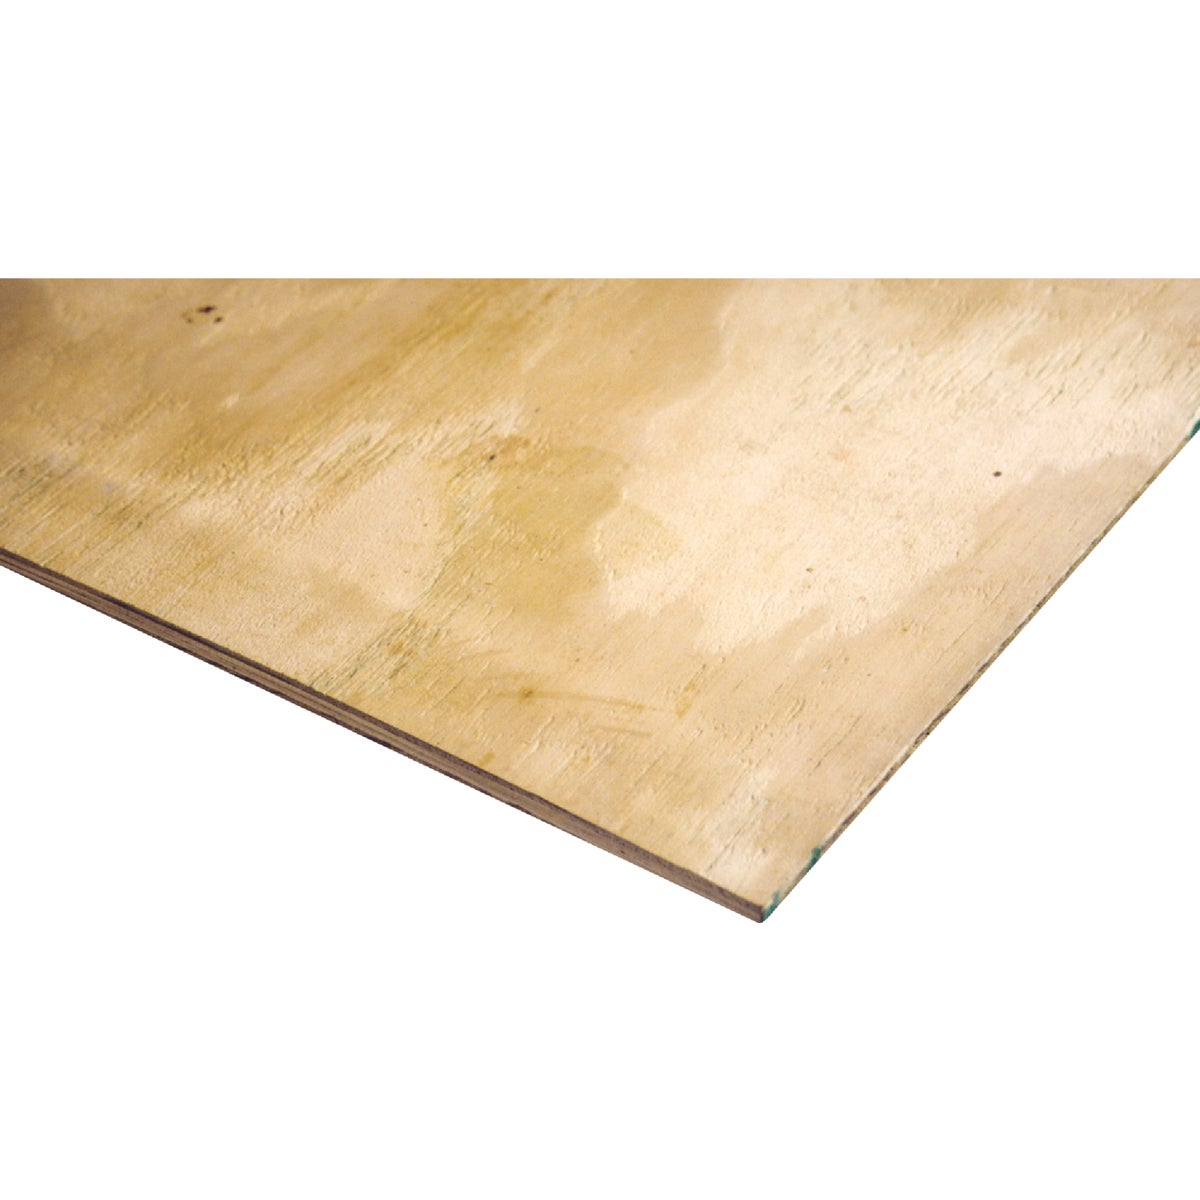 3/8X24X48 BCX PN PLYWOOD - 99792 by Ufpi Lbr & Treated